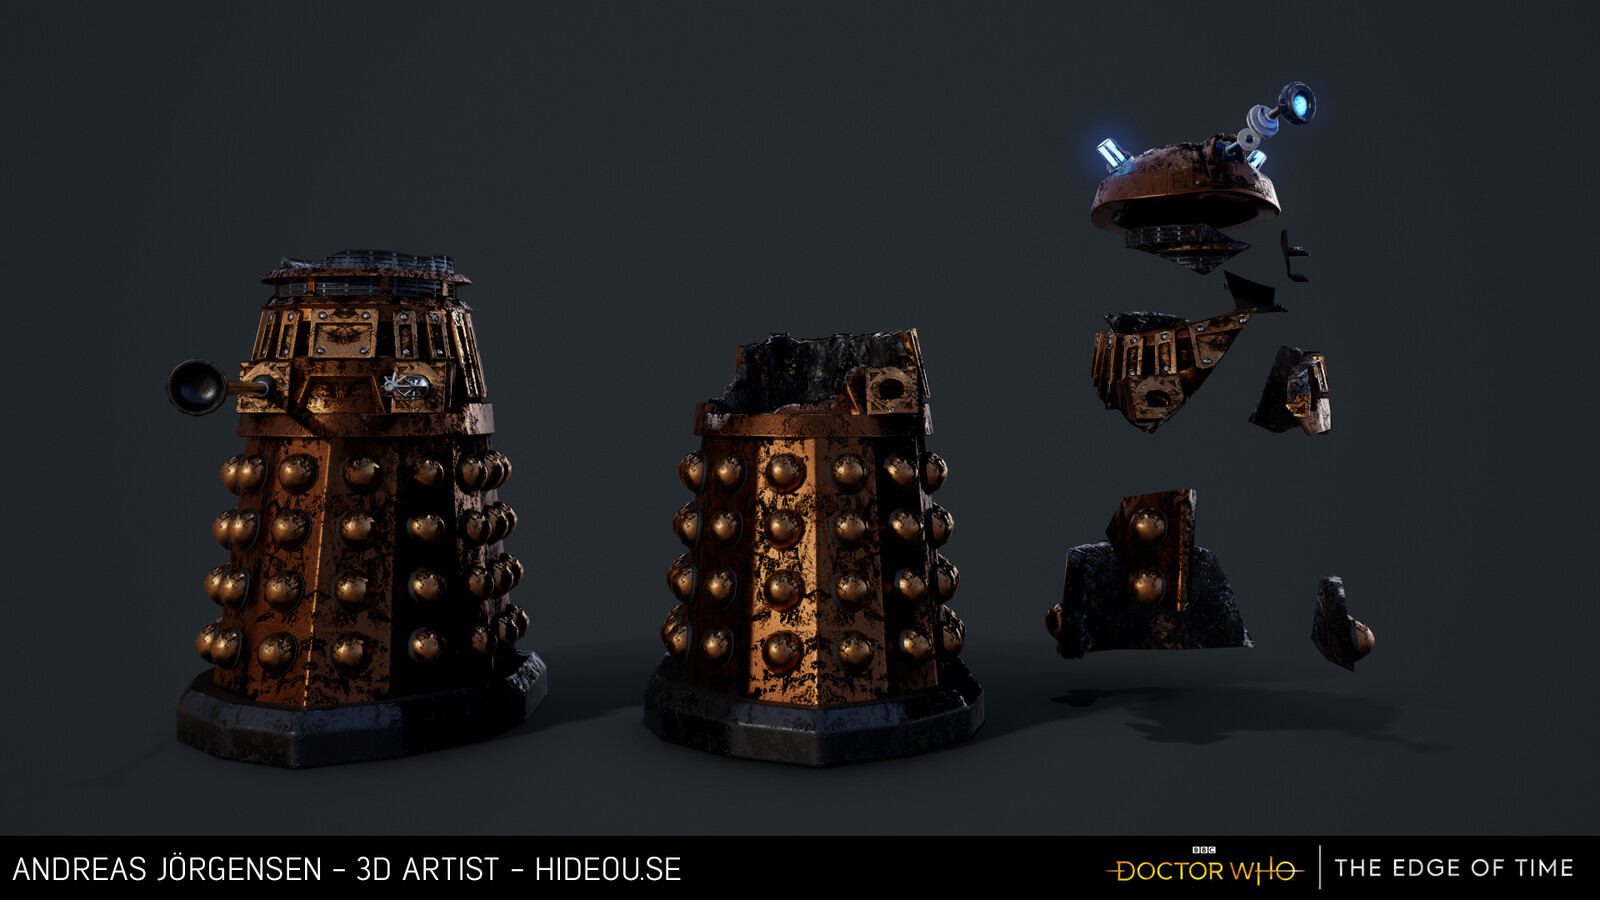 Various states of destroyed Dalek, physics debris on the right